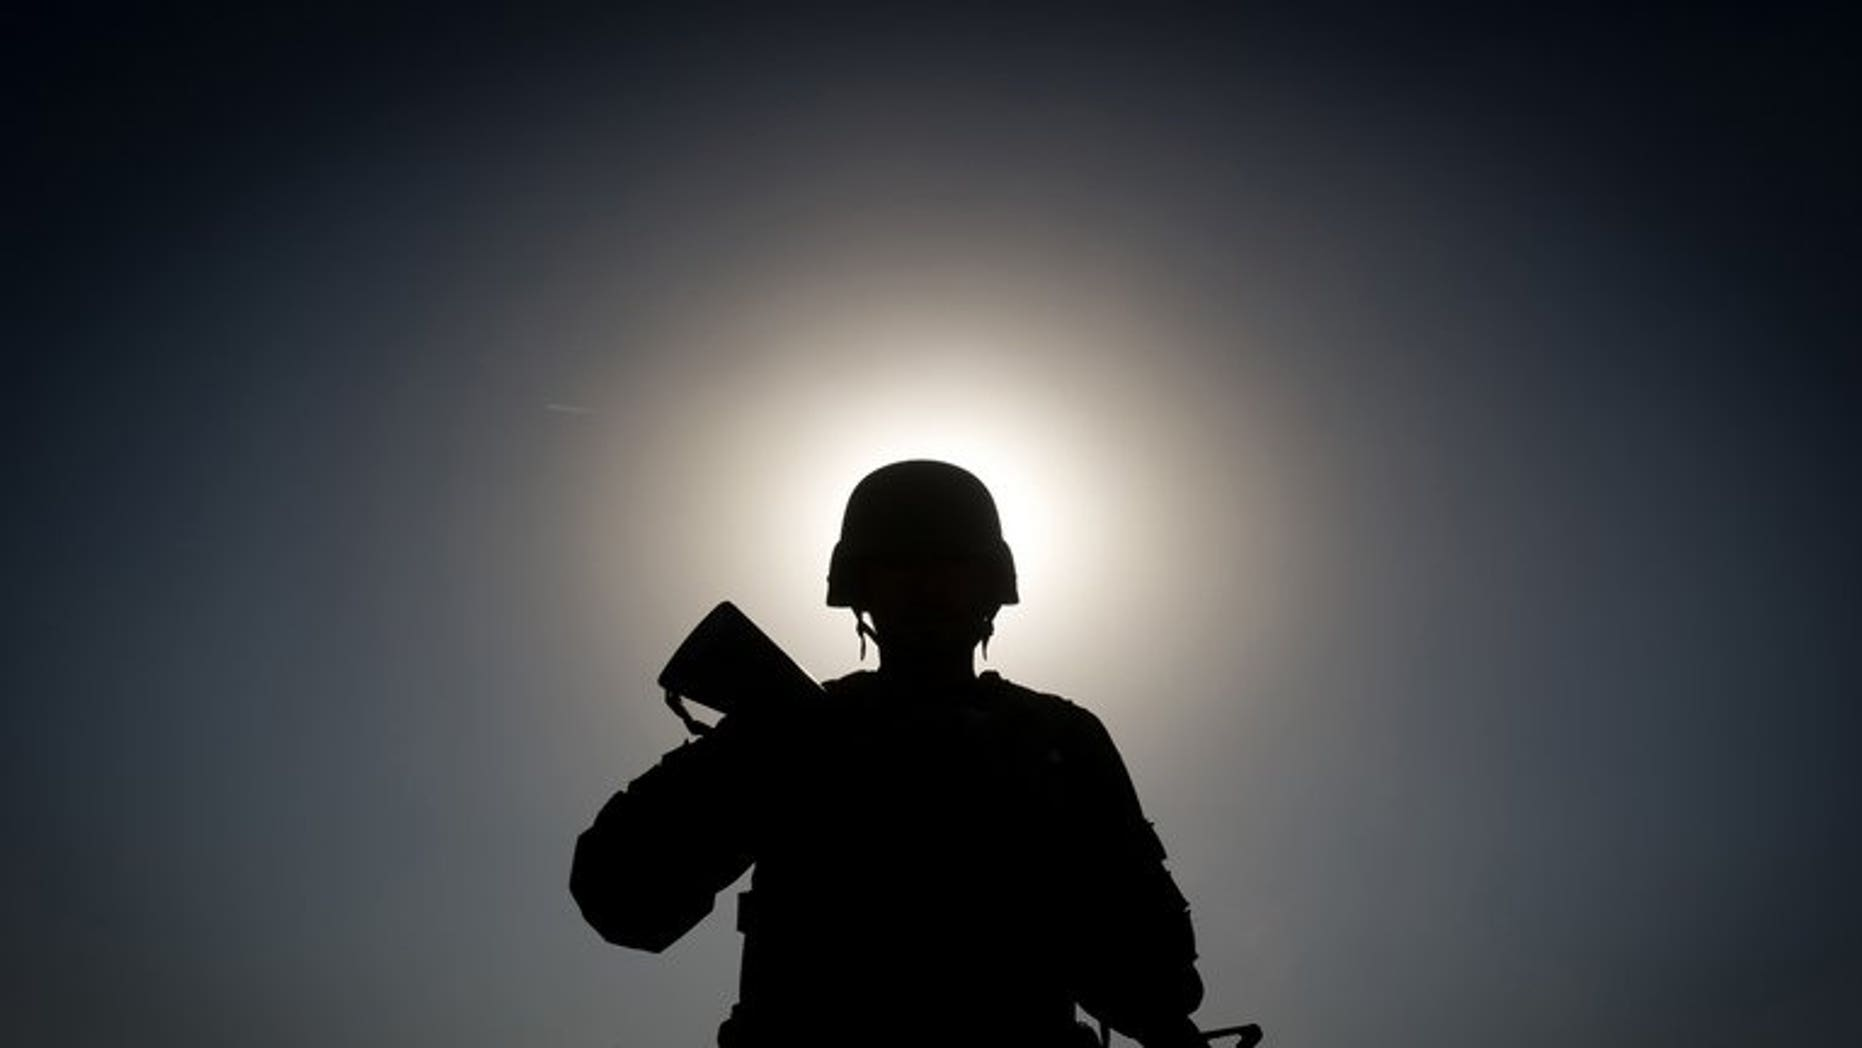 """An Afghan soldier on patrol near Kandahar, on November 28, 2010. An Afghan soldier has shot dead his Slovakian counterpart in the latest """"insider attack"""" to shake efforts by the NATO coalition and the Afghan army to work together to defeat the Taliban insurgency."""